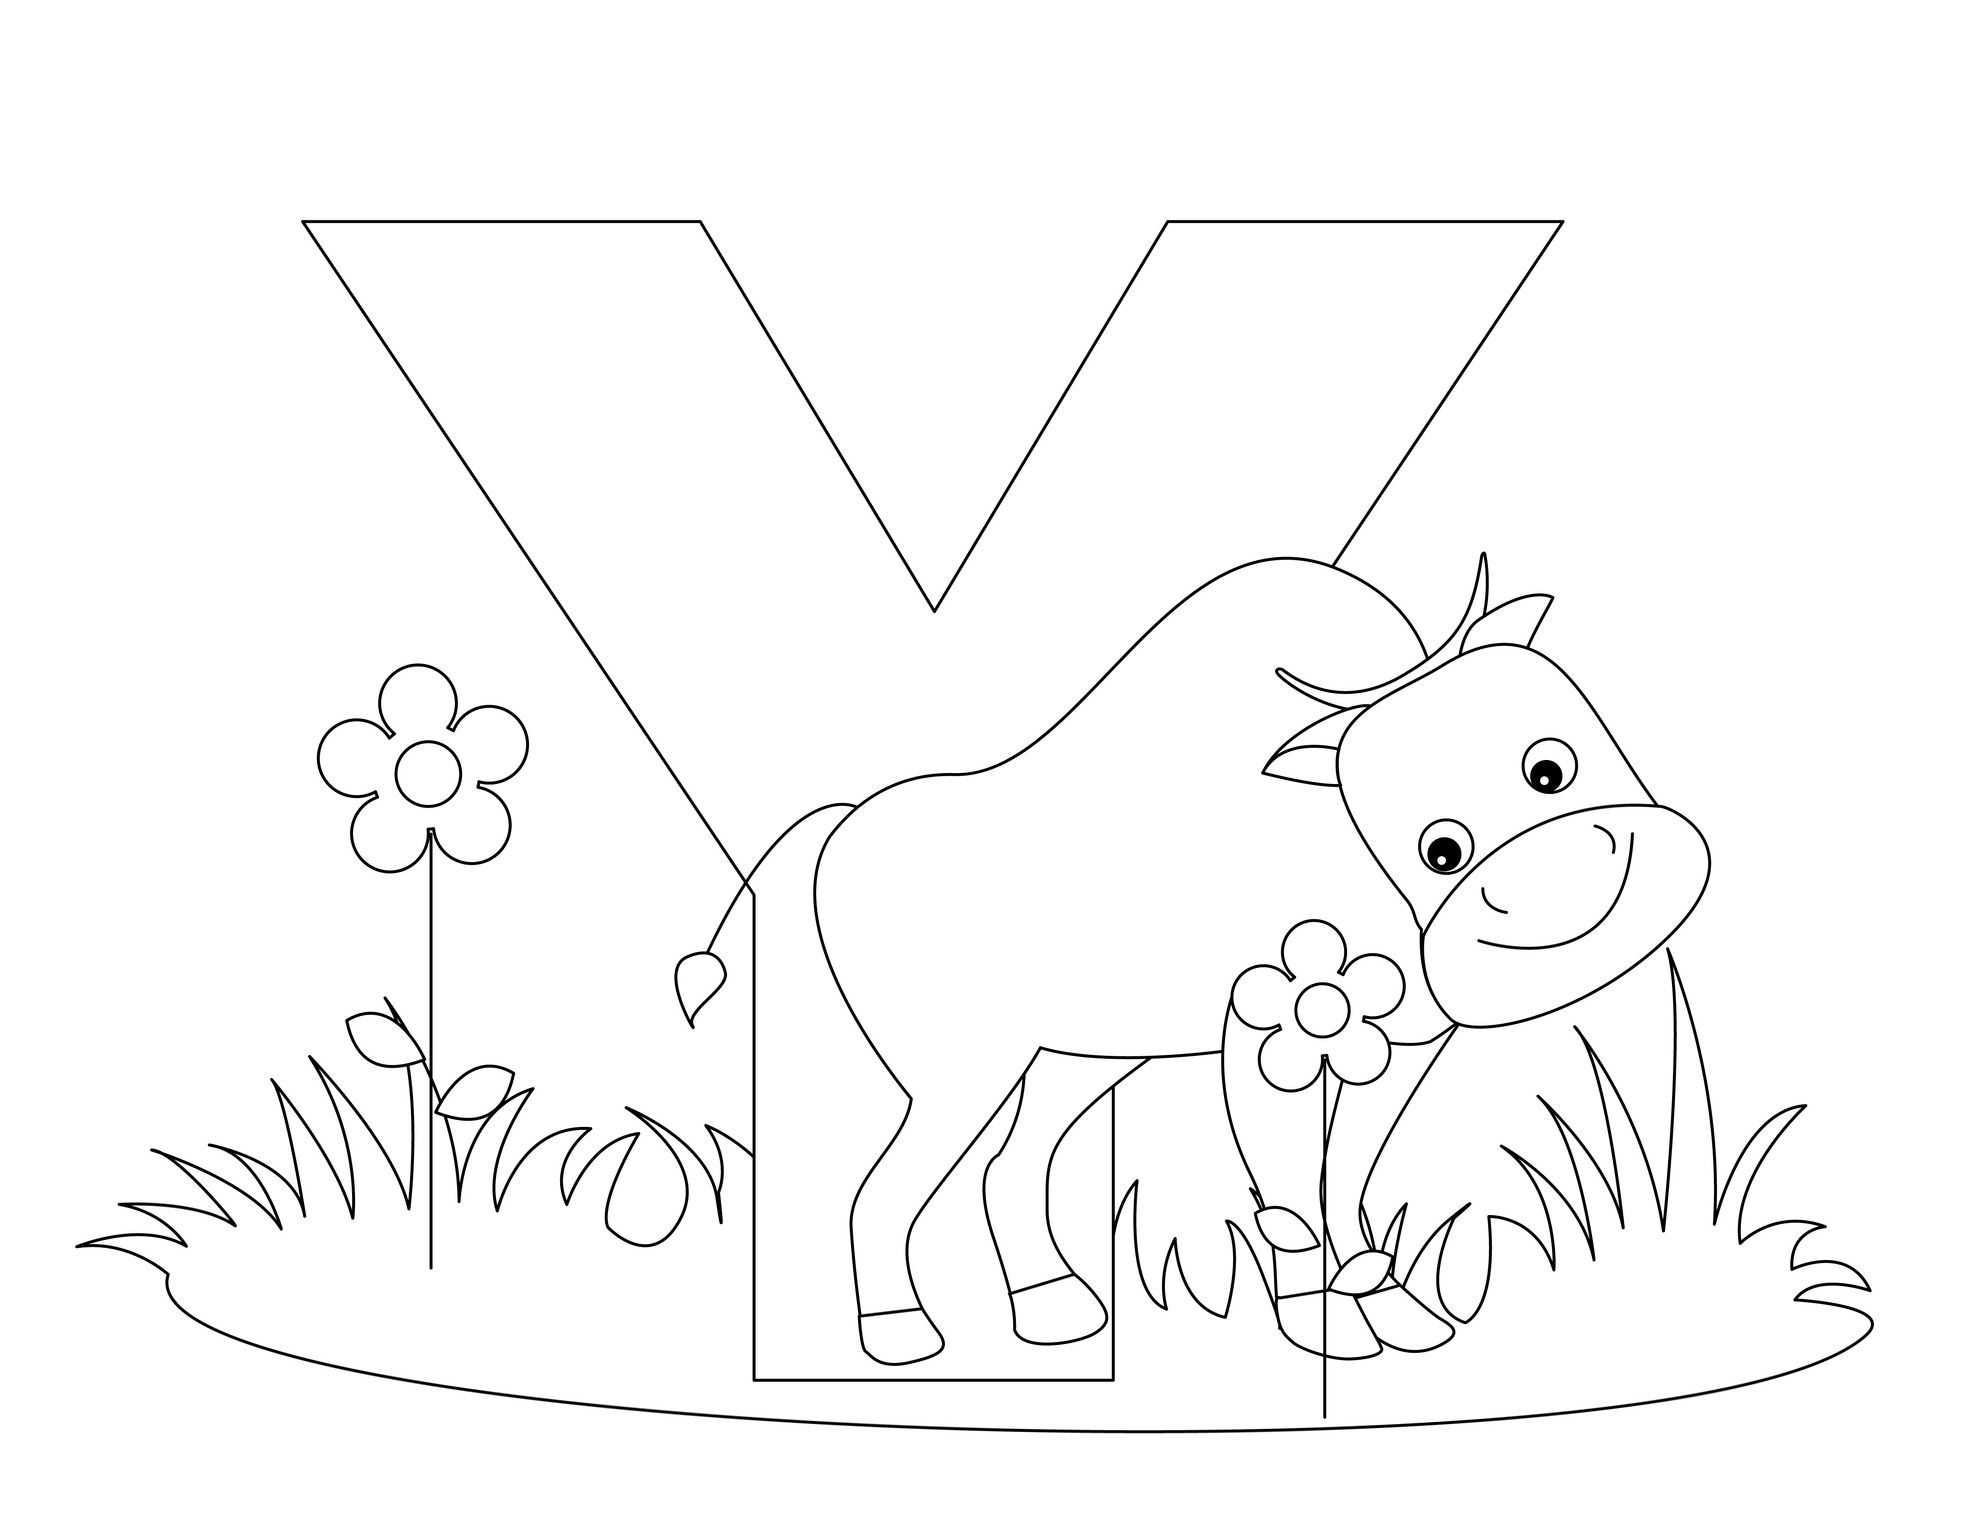 Inchworm Coloring Page At Getcolorings